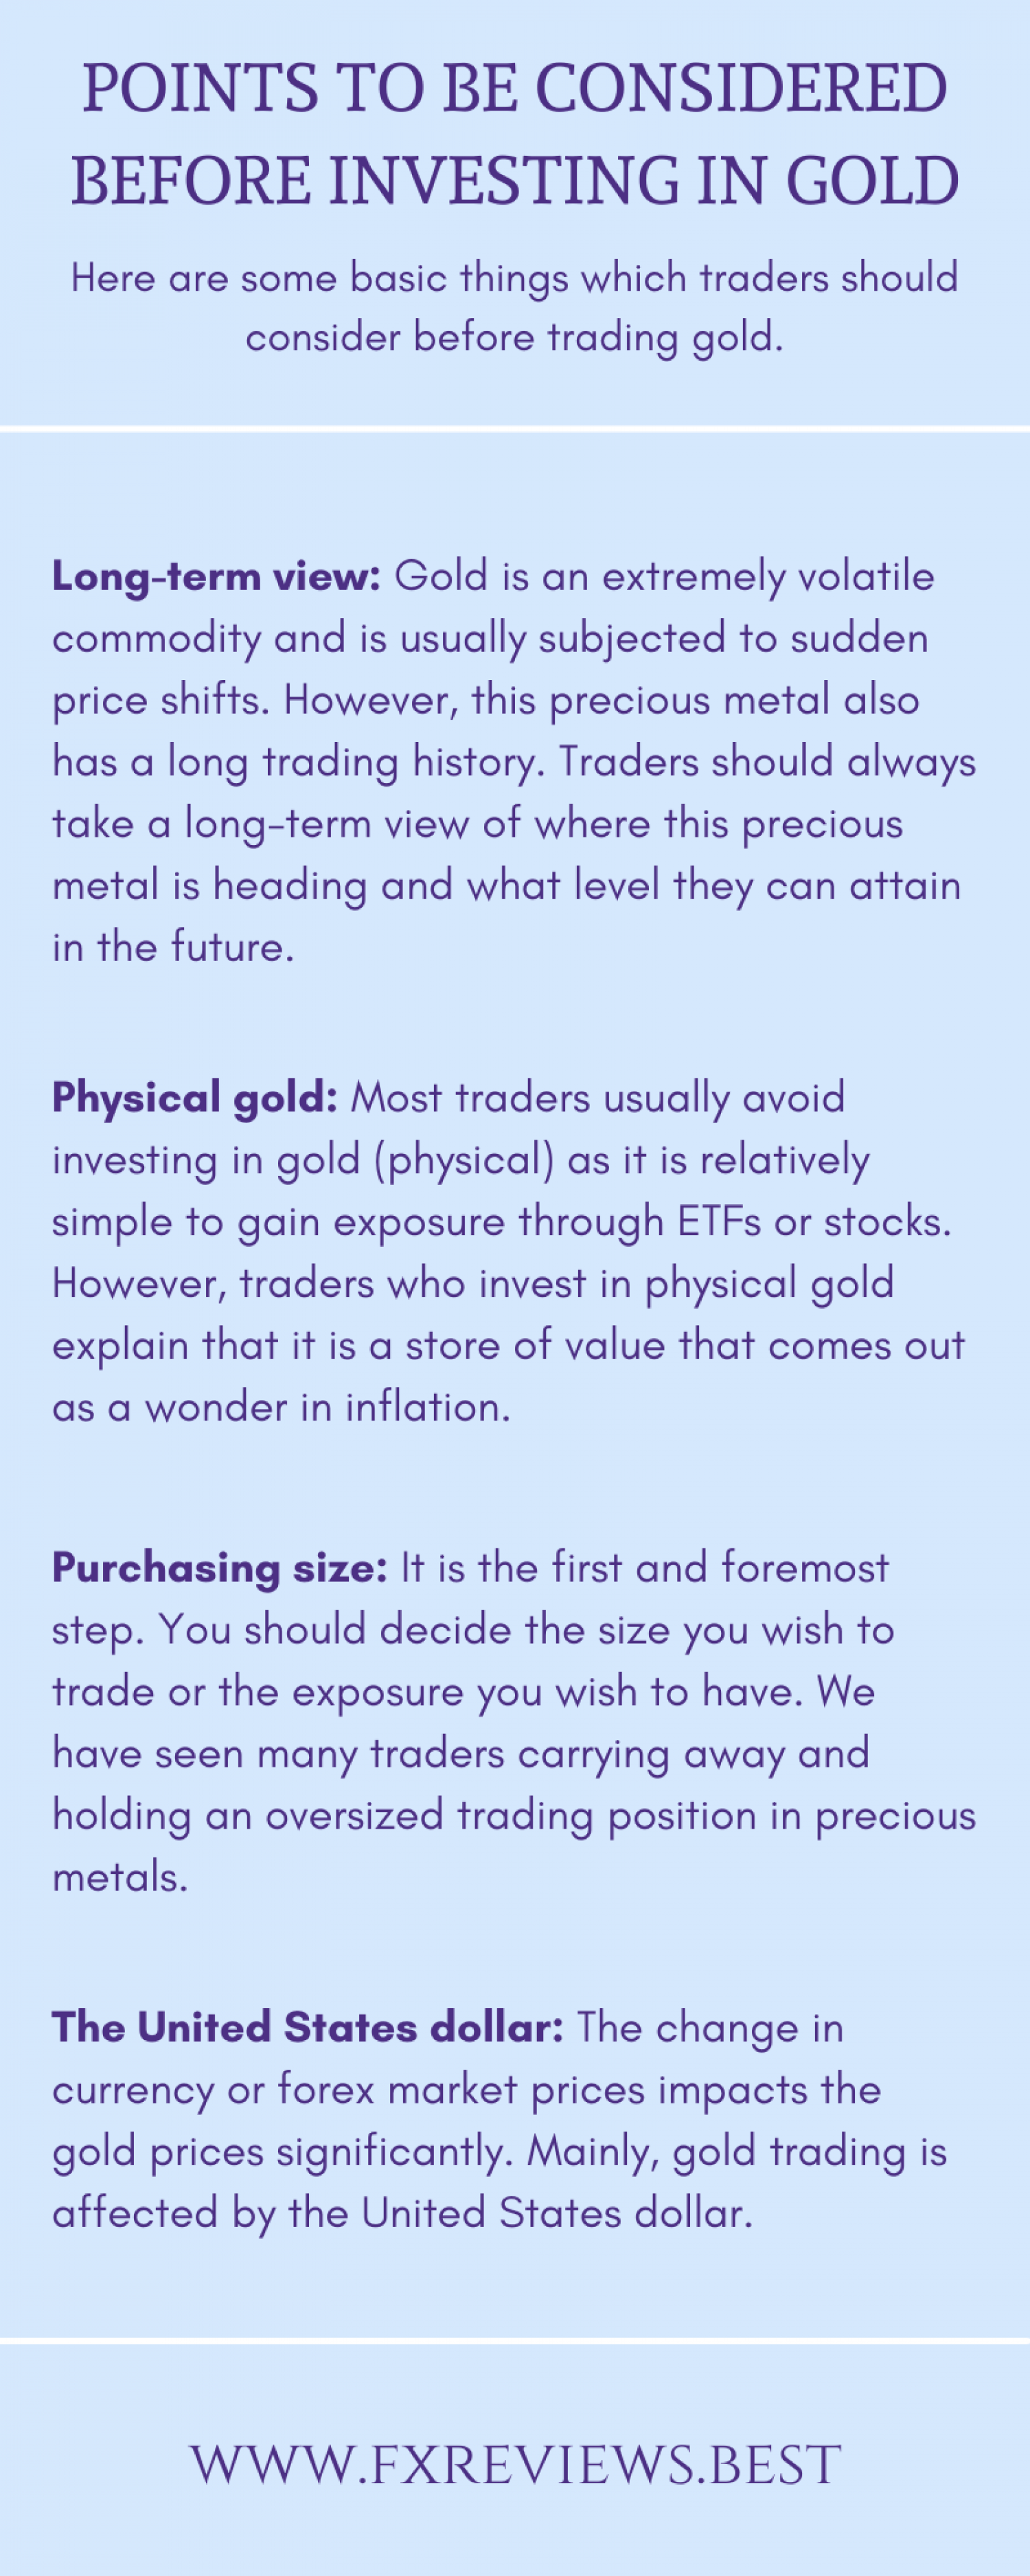 Points to be considered before investing in gold  Infographic